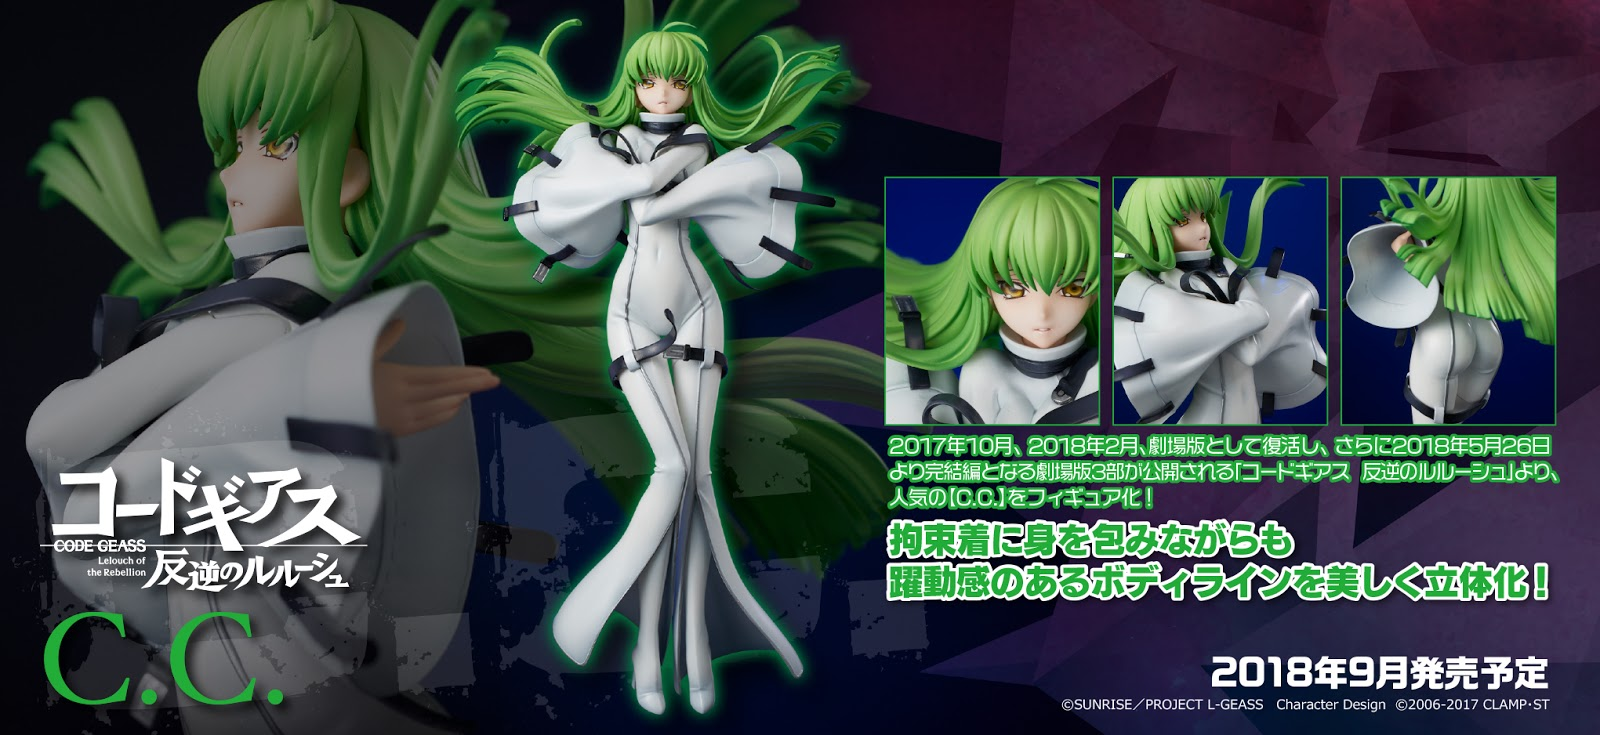 Code Geass Lelouch of the Rebellion - C.C. (Union Creative's) Mj110